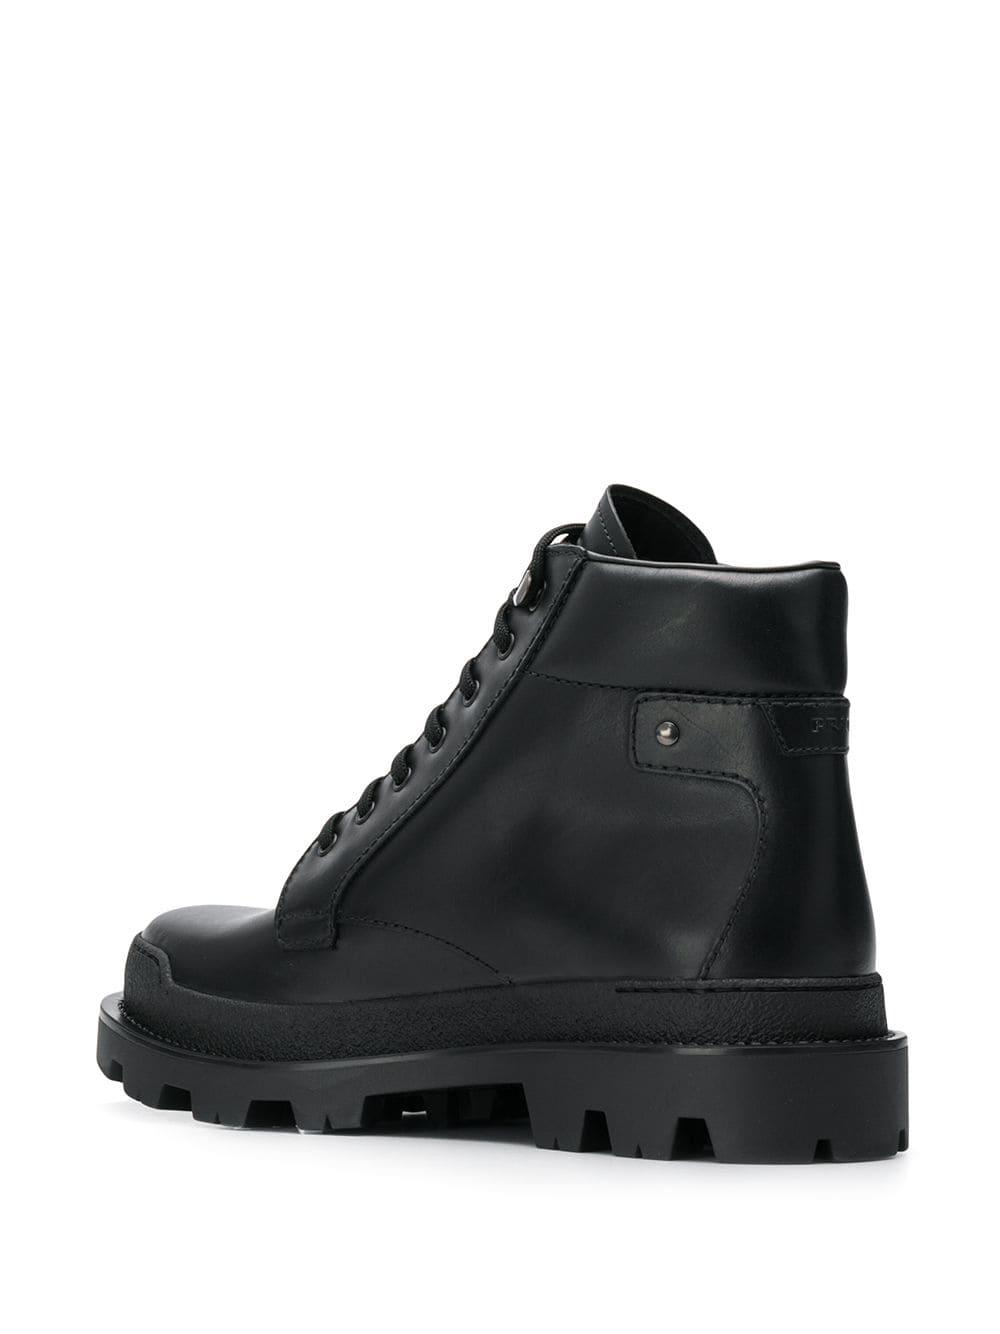 ca83ece03bf Men's Black Lace-up Hiking Boots